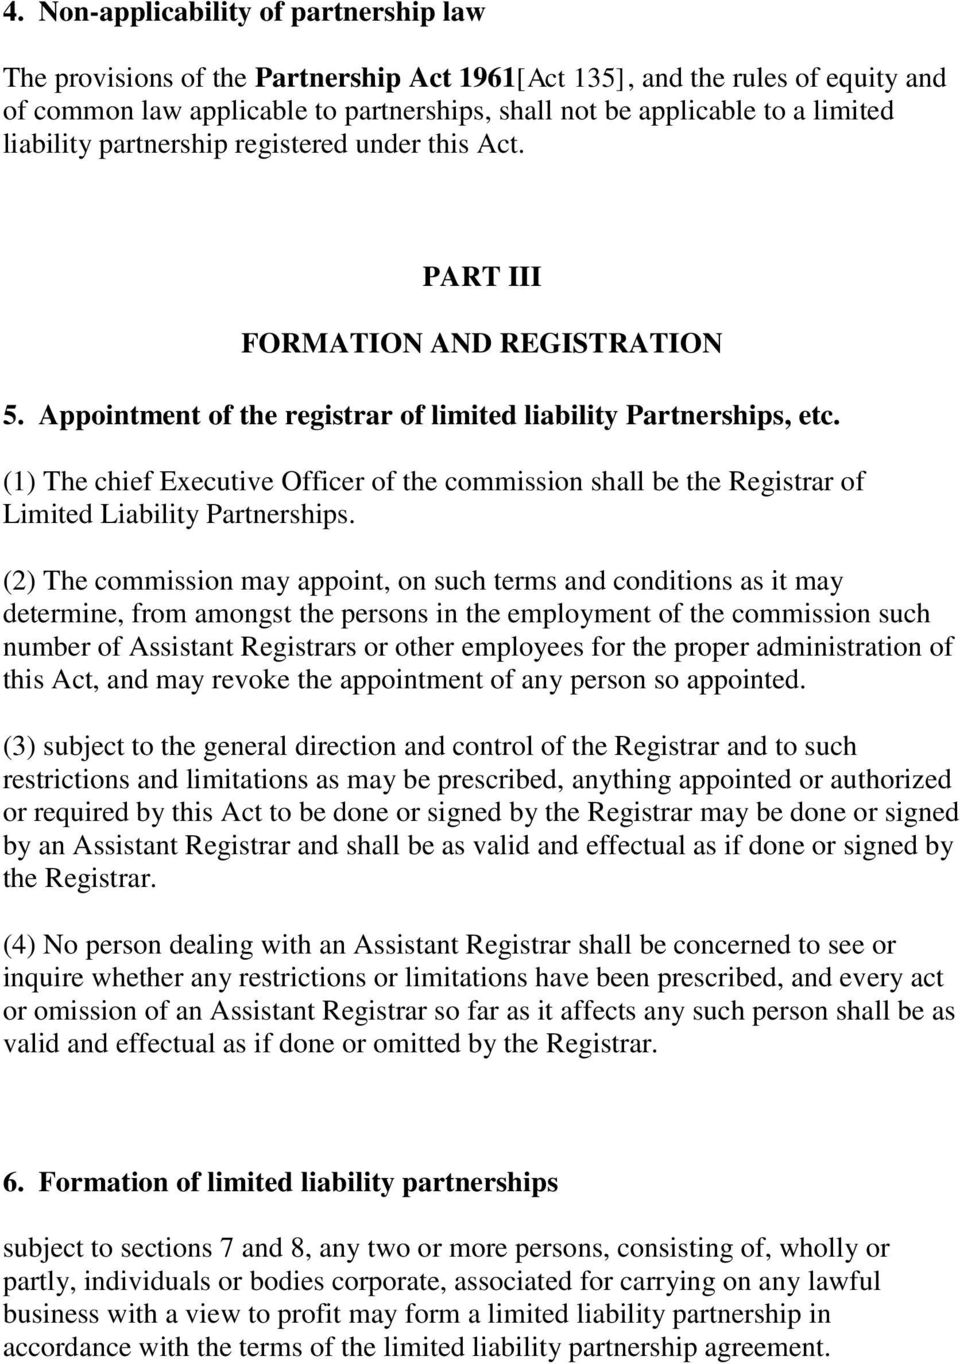 (1) The chief Executive Officer of the commission shall be the Registrar of Limited Liability Partnerships.